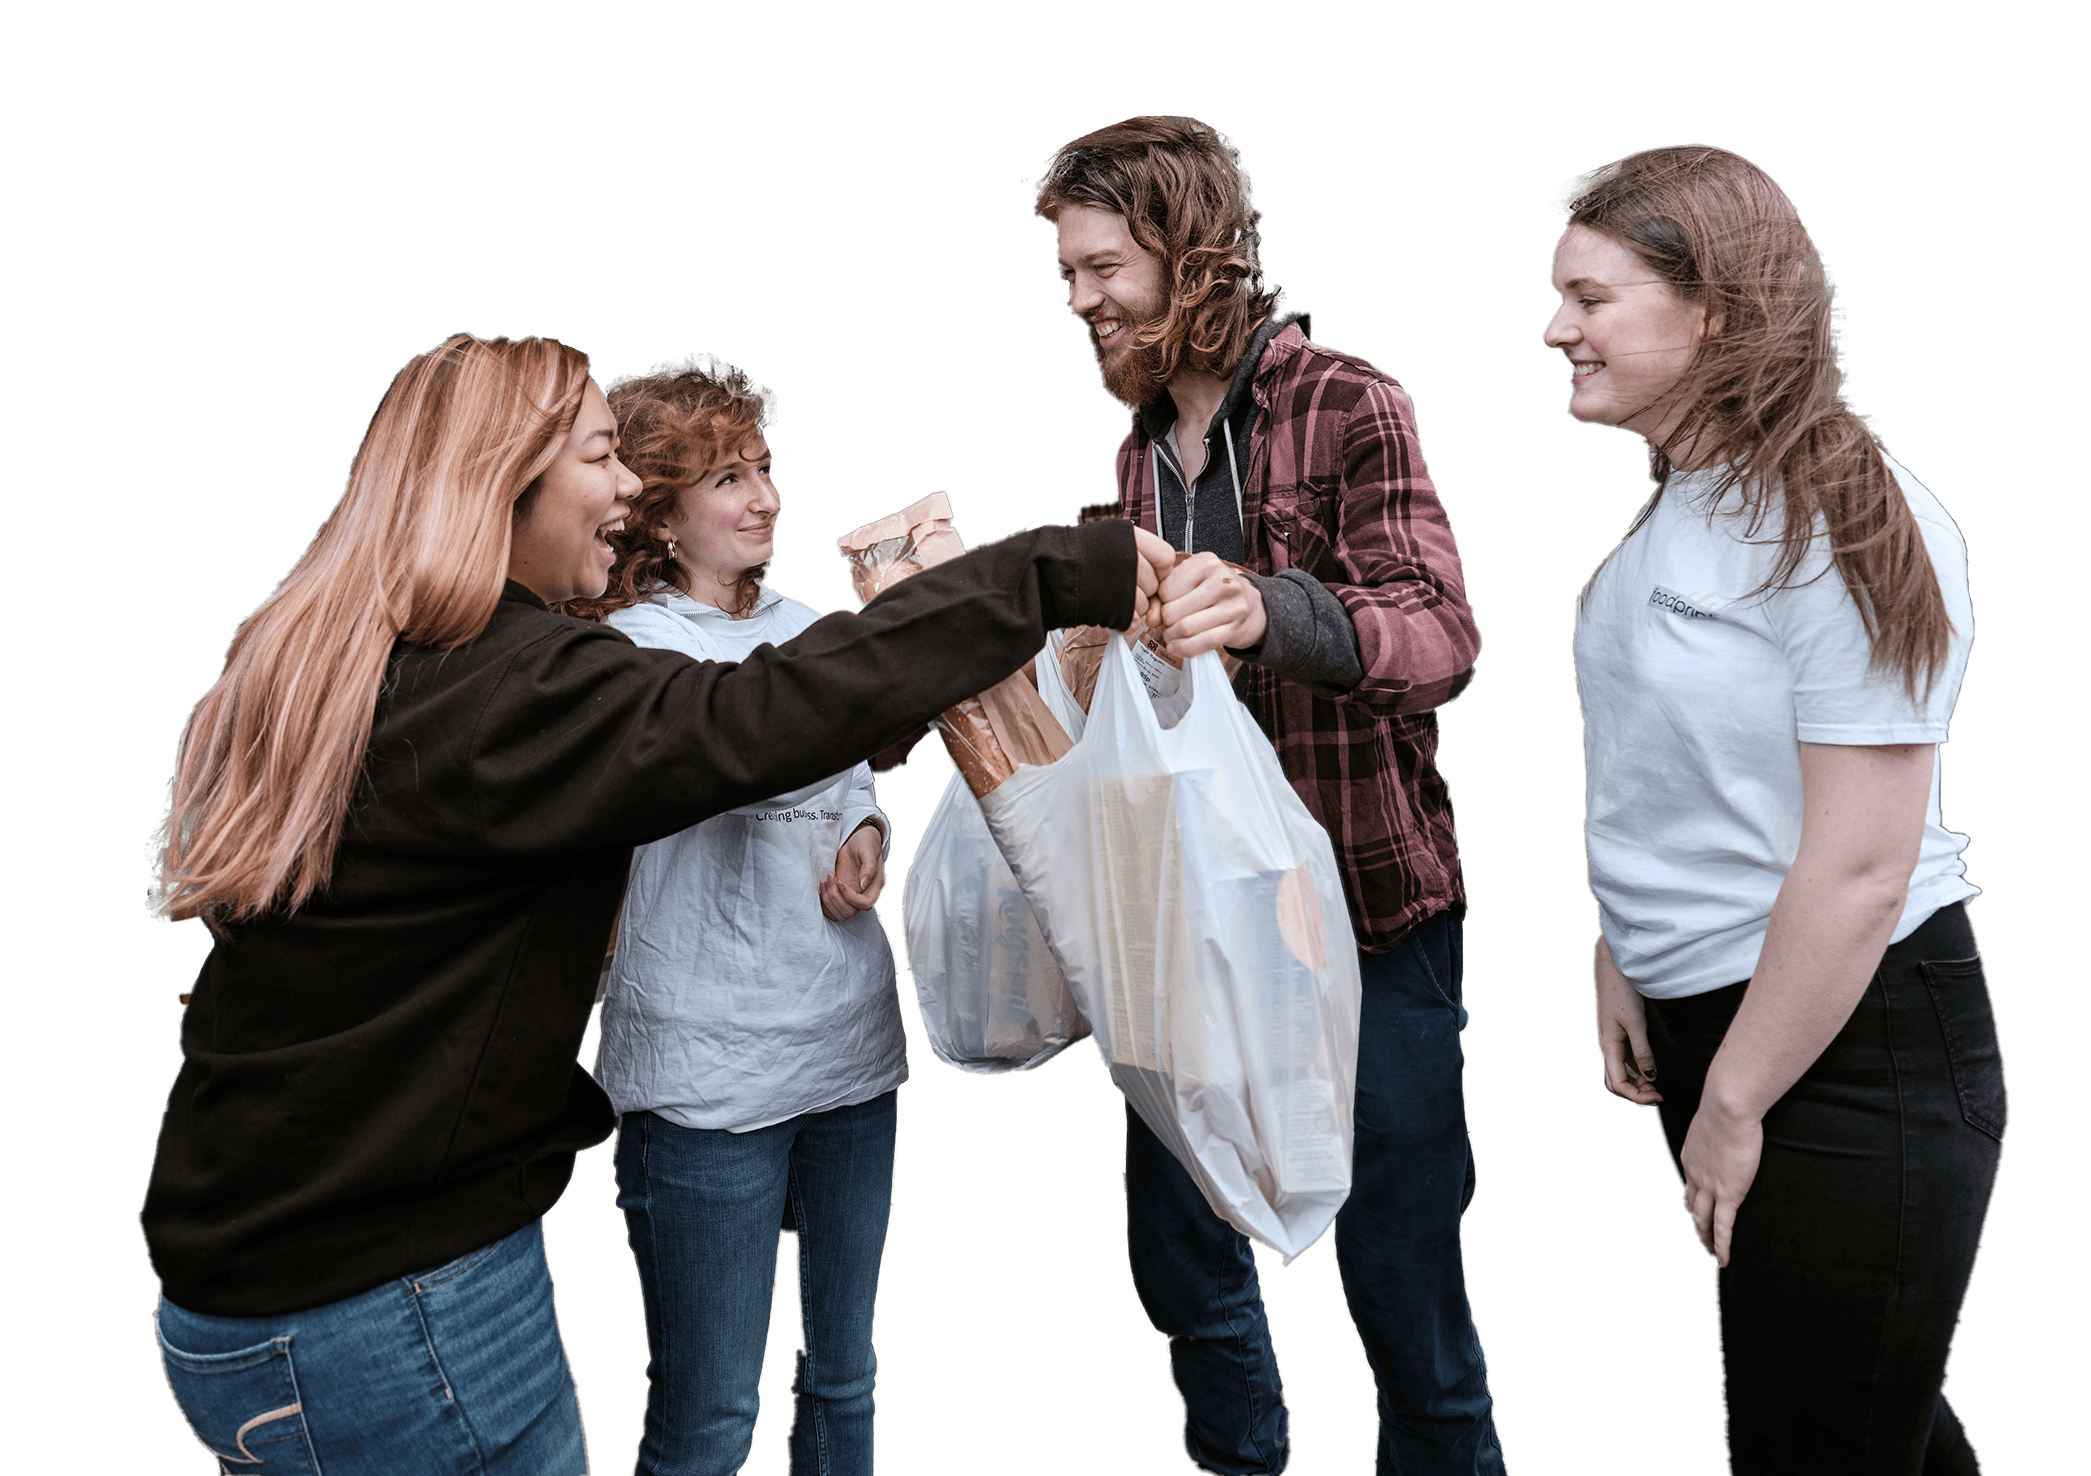 Group of students sharing food shopping bags